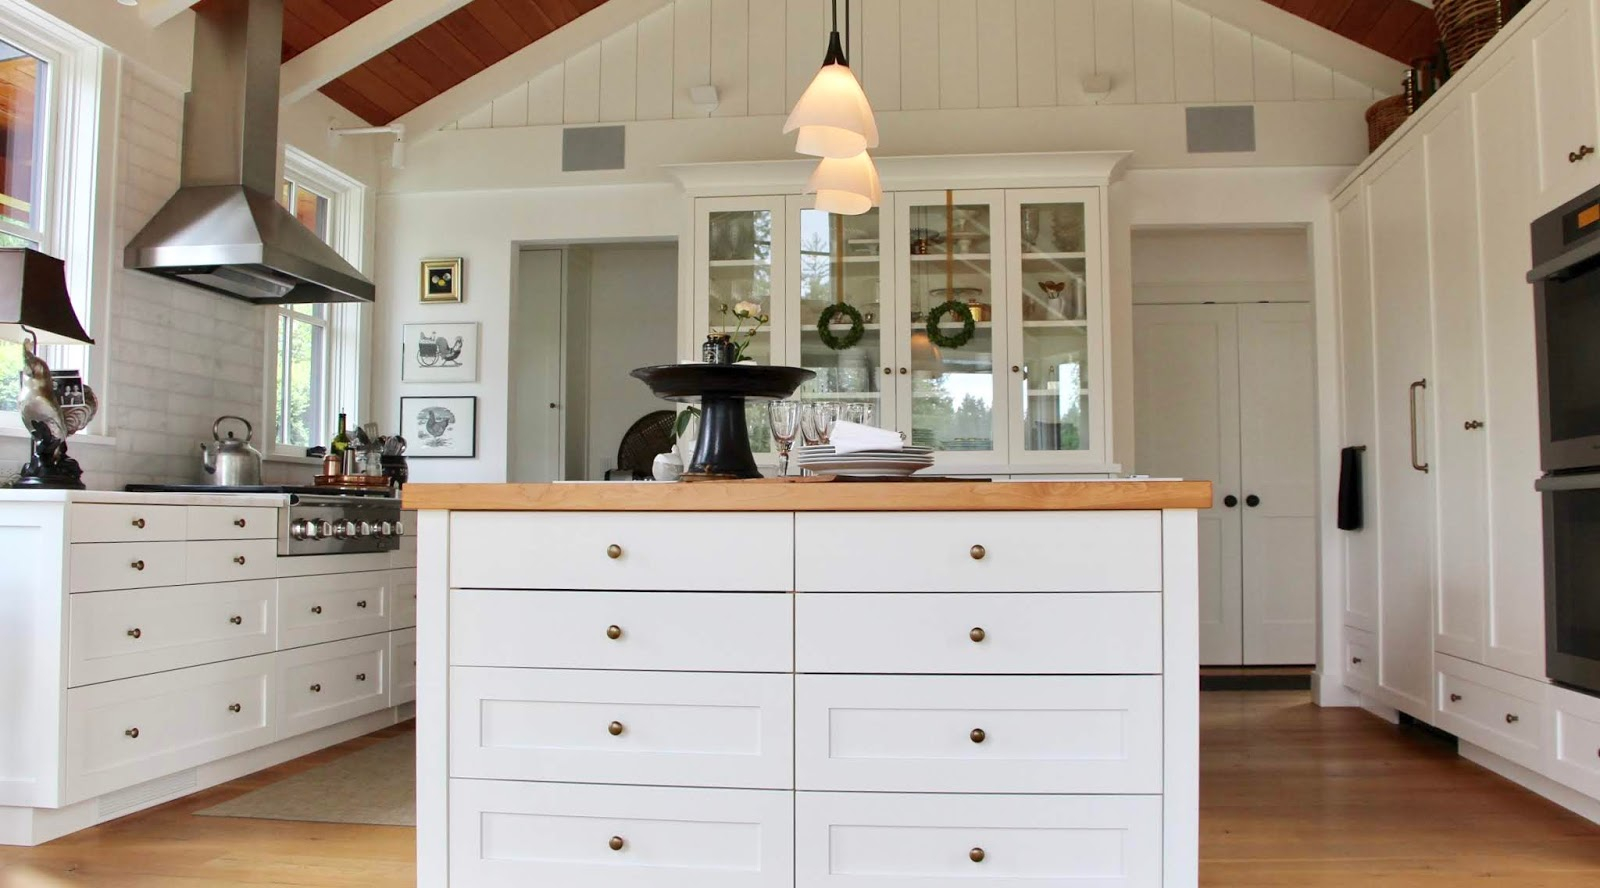 92cf6e6c0ef The little boxwood wreaths add just the right amount of color to this all  white kitchen.